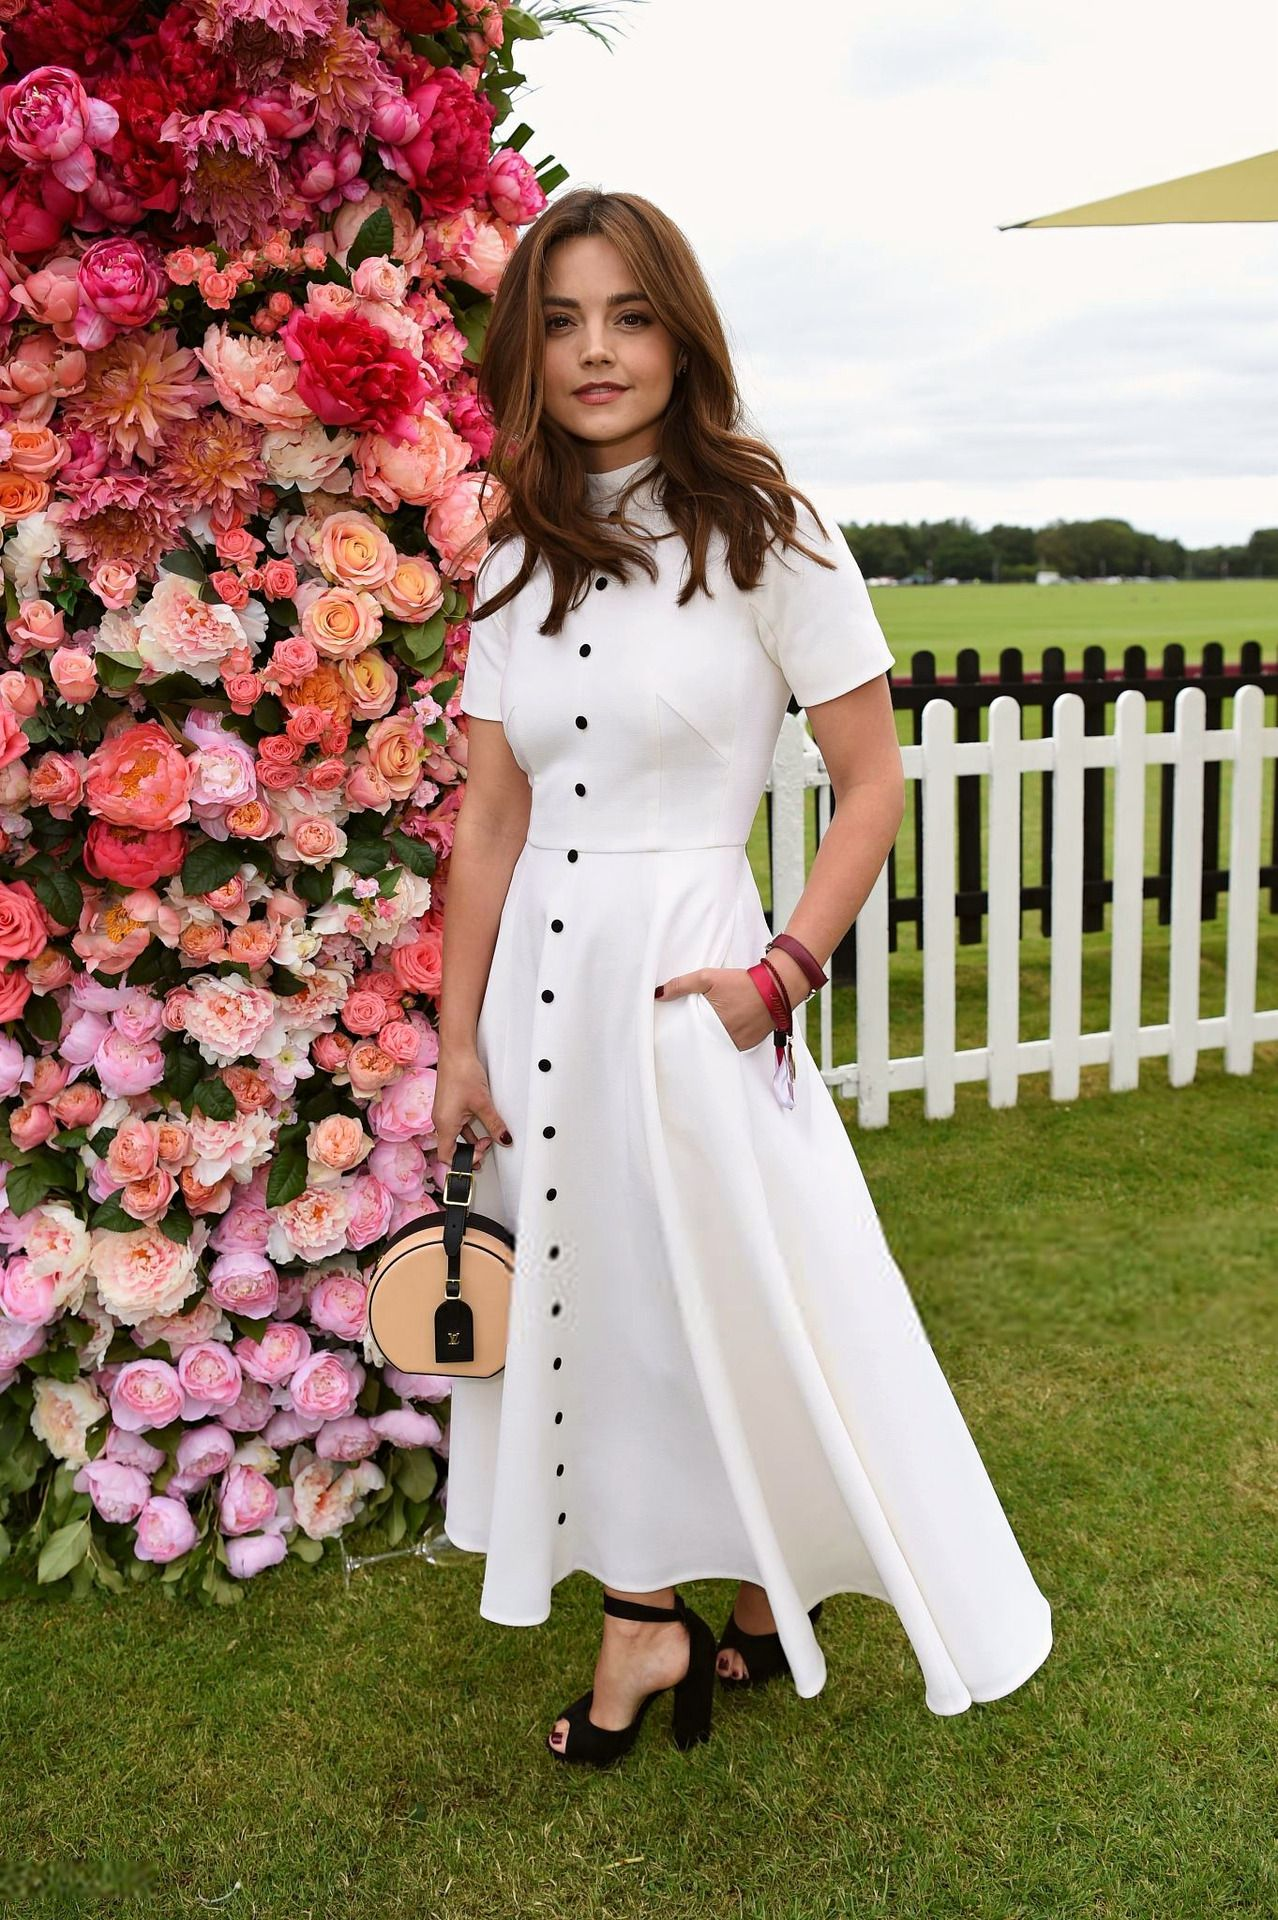 Flowers seem to follow Jenna Coleman around wherever she goes this